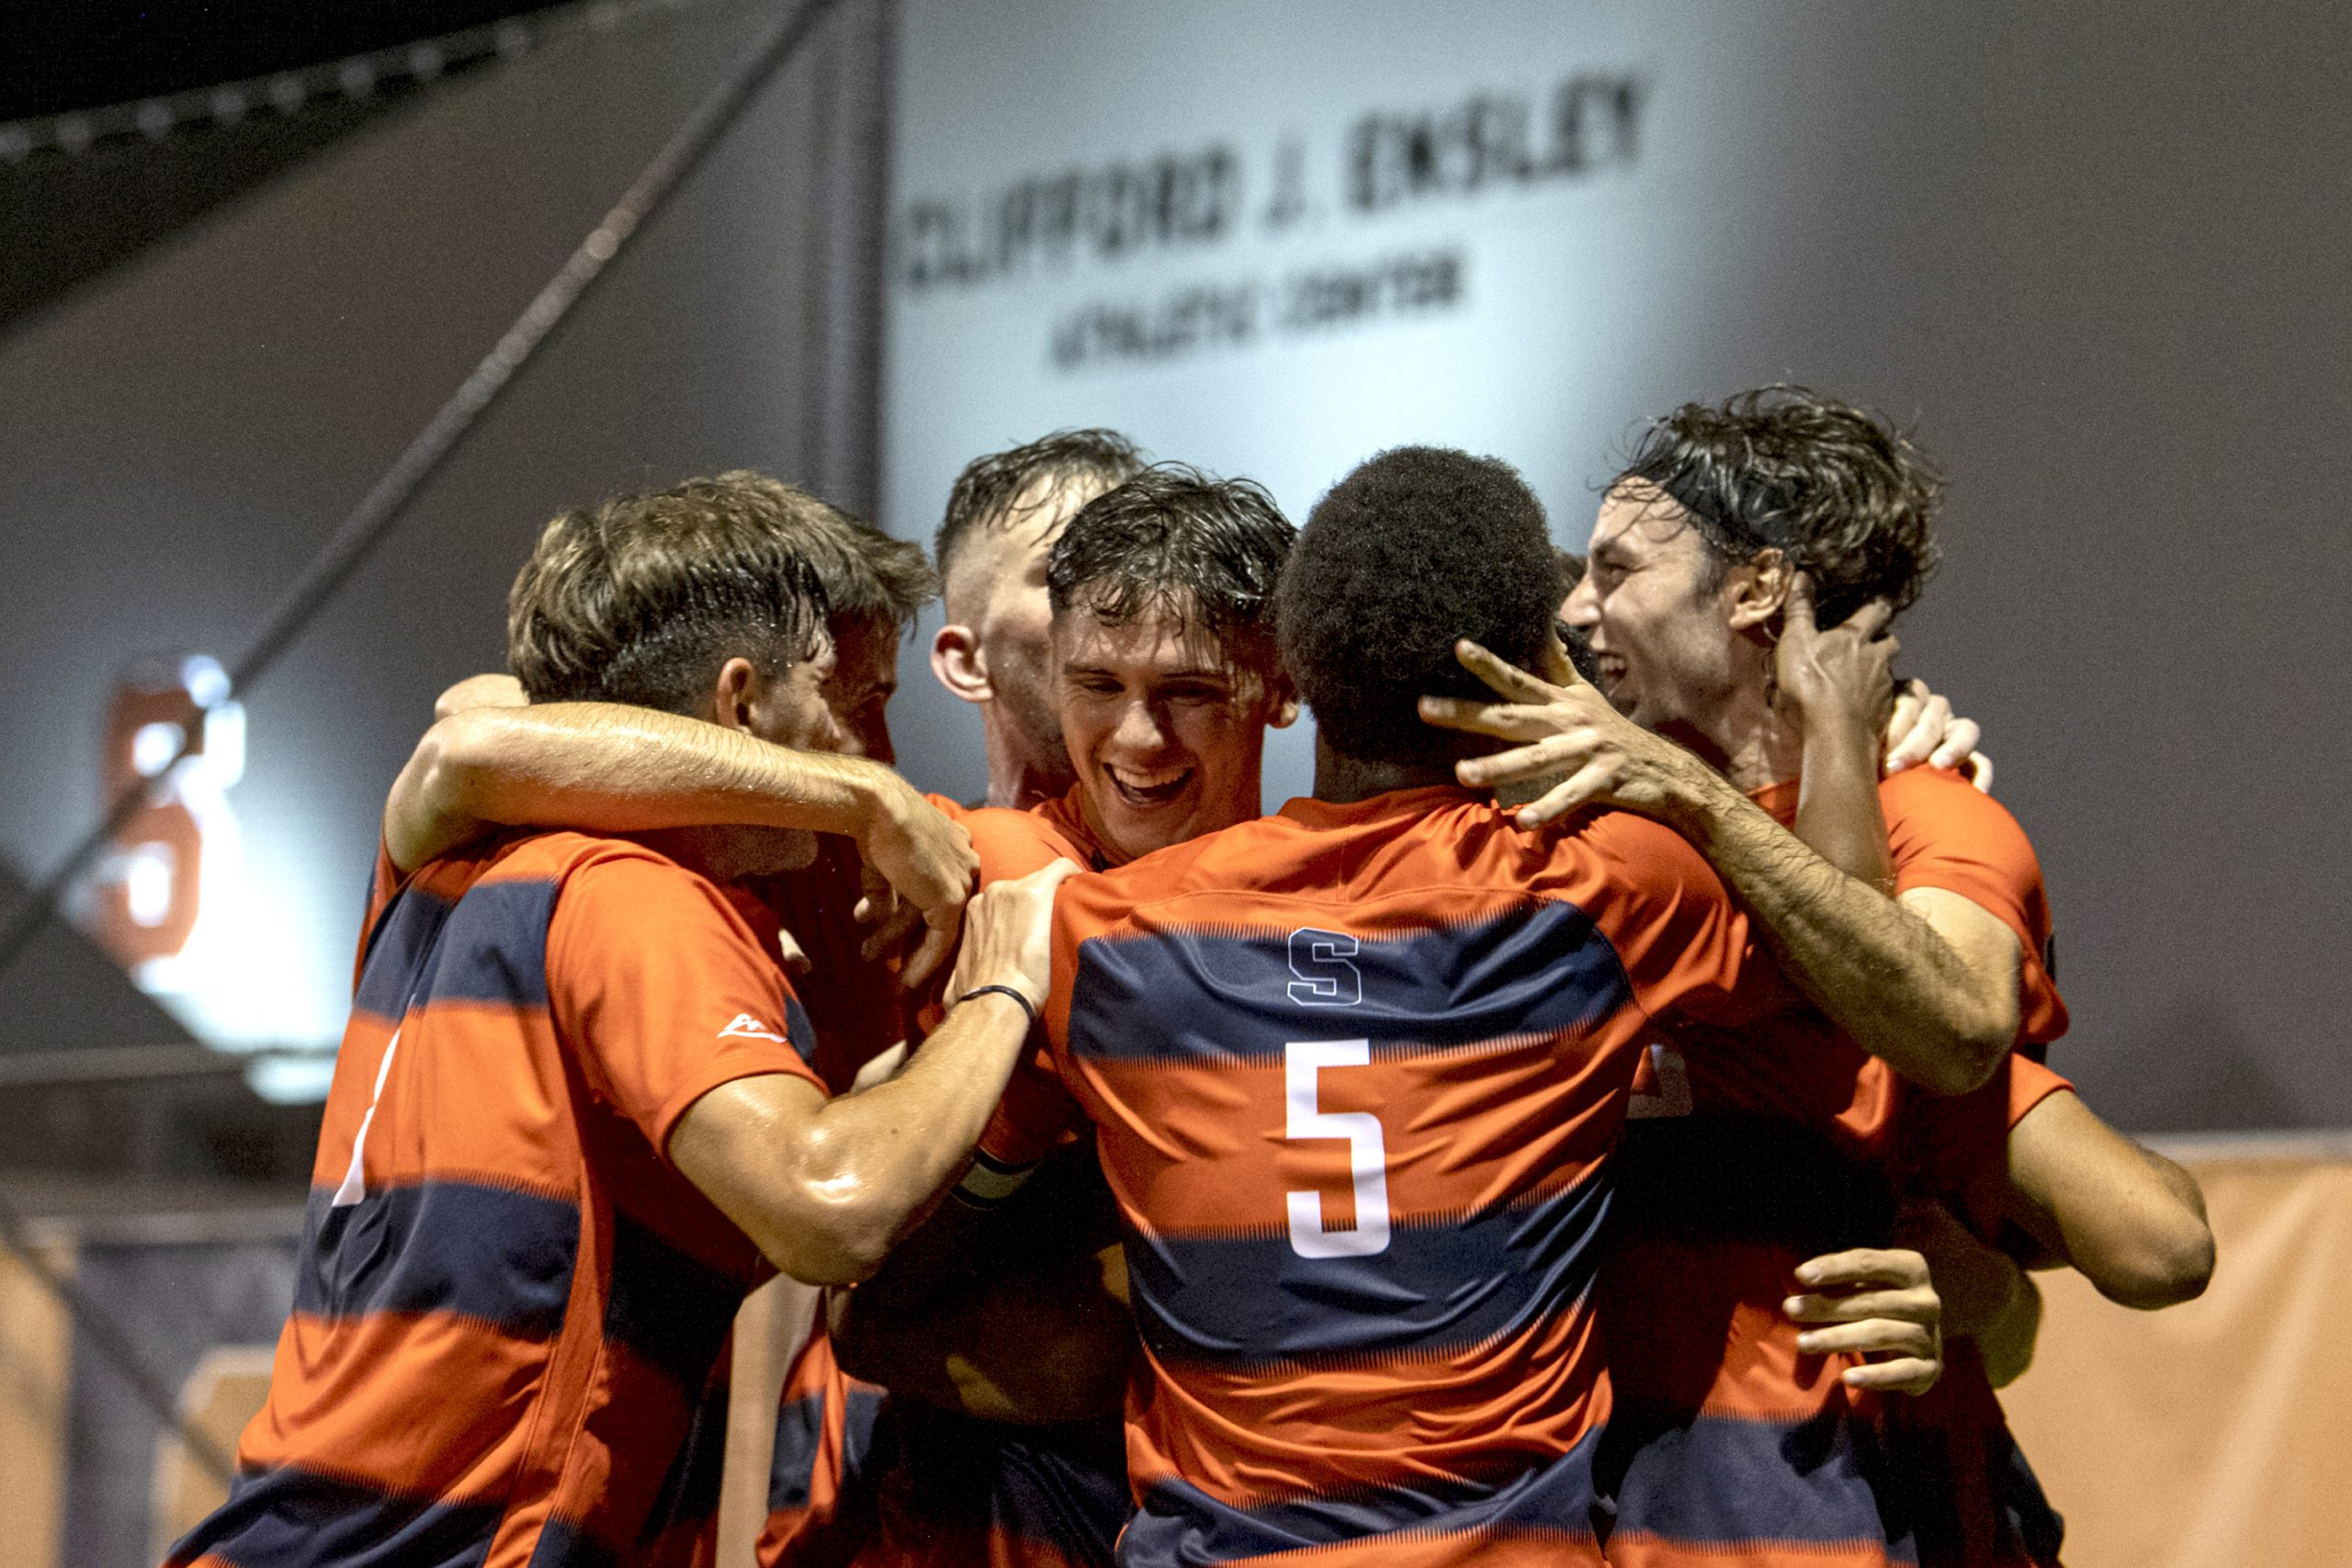 The Syracuse men's soccer team celebrates after junior defenseman Christian Curti's goal during its season opener against Drexel at the SU Soccer Stadium, August 26.